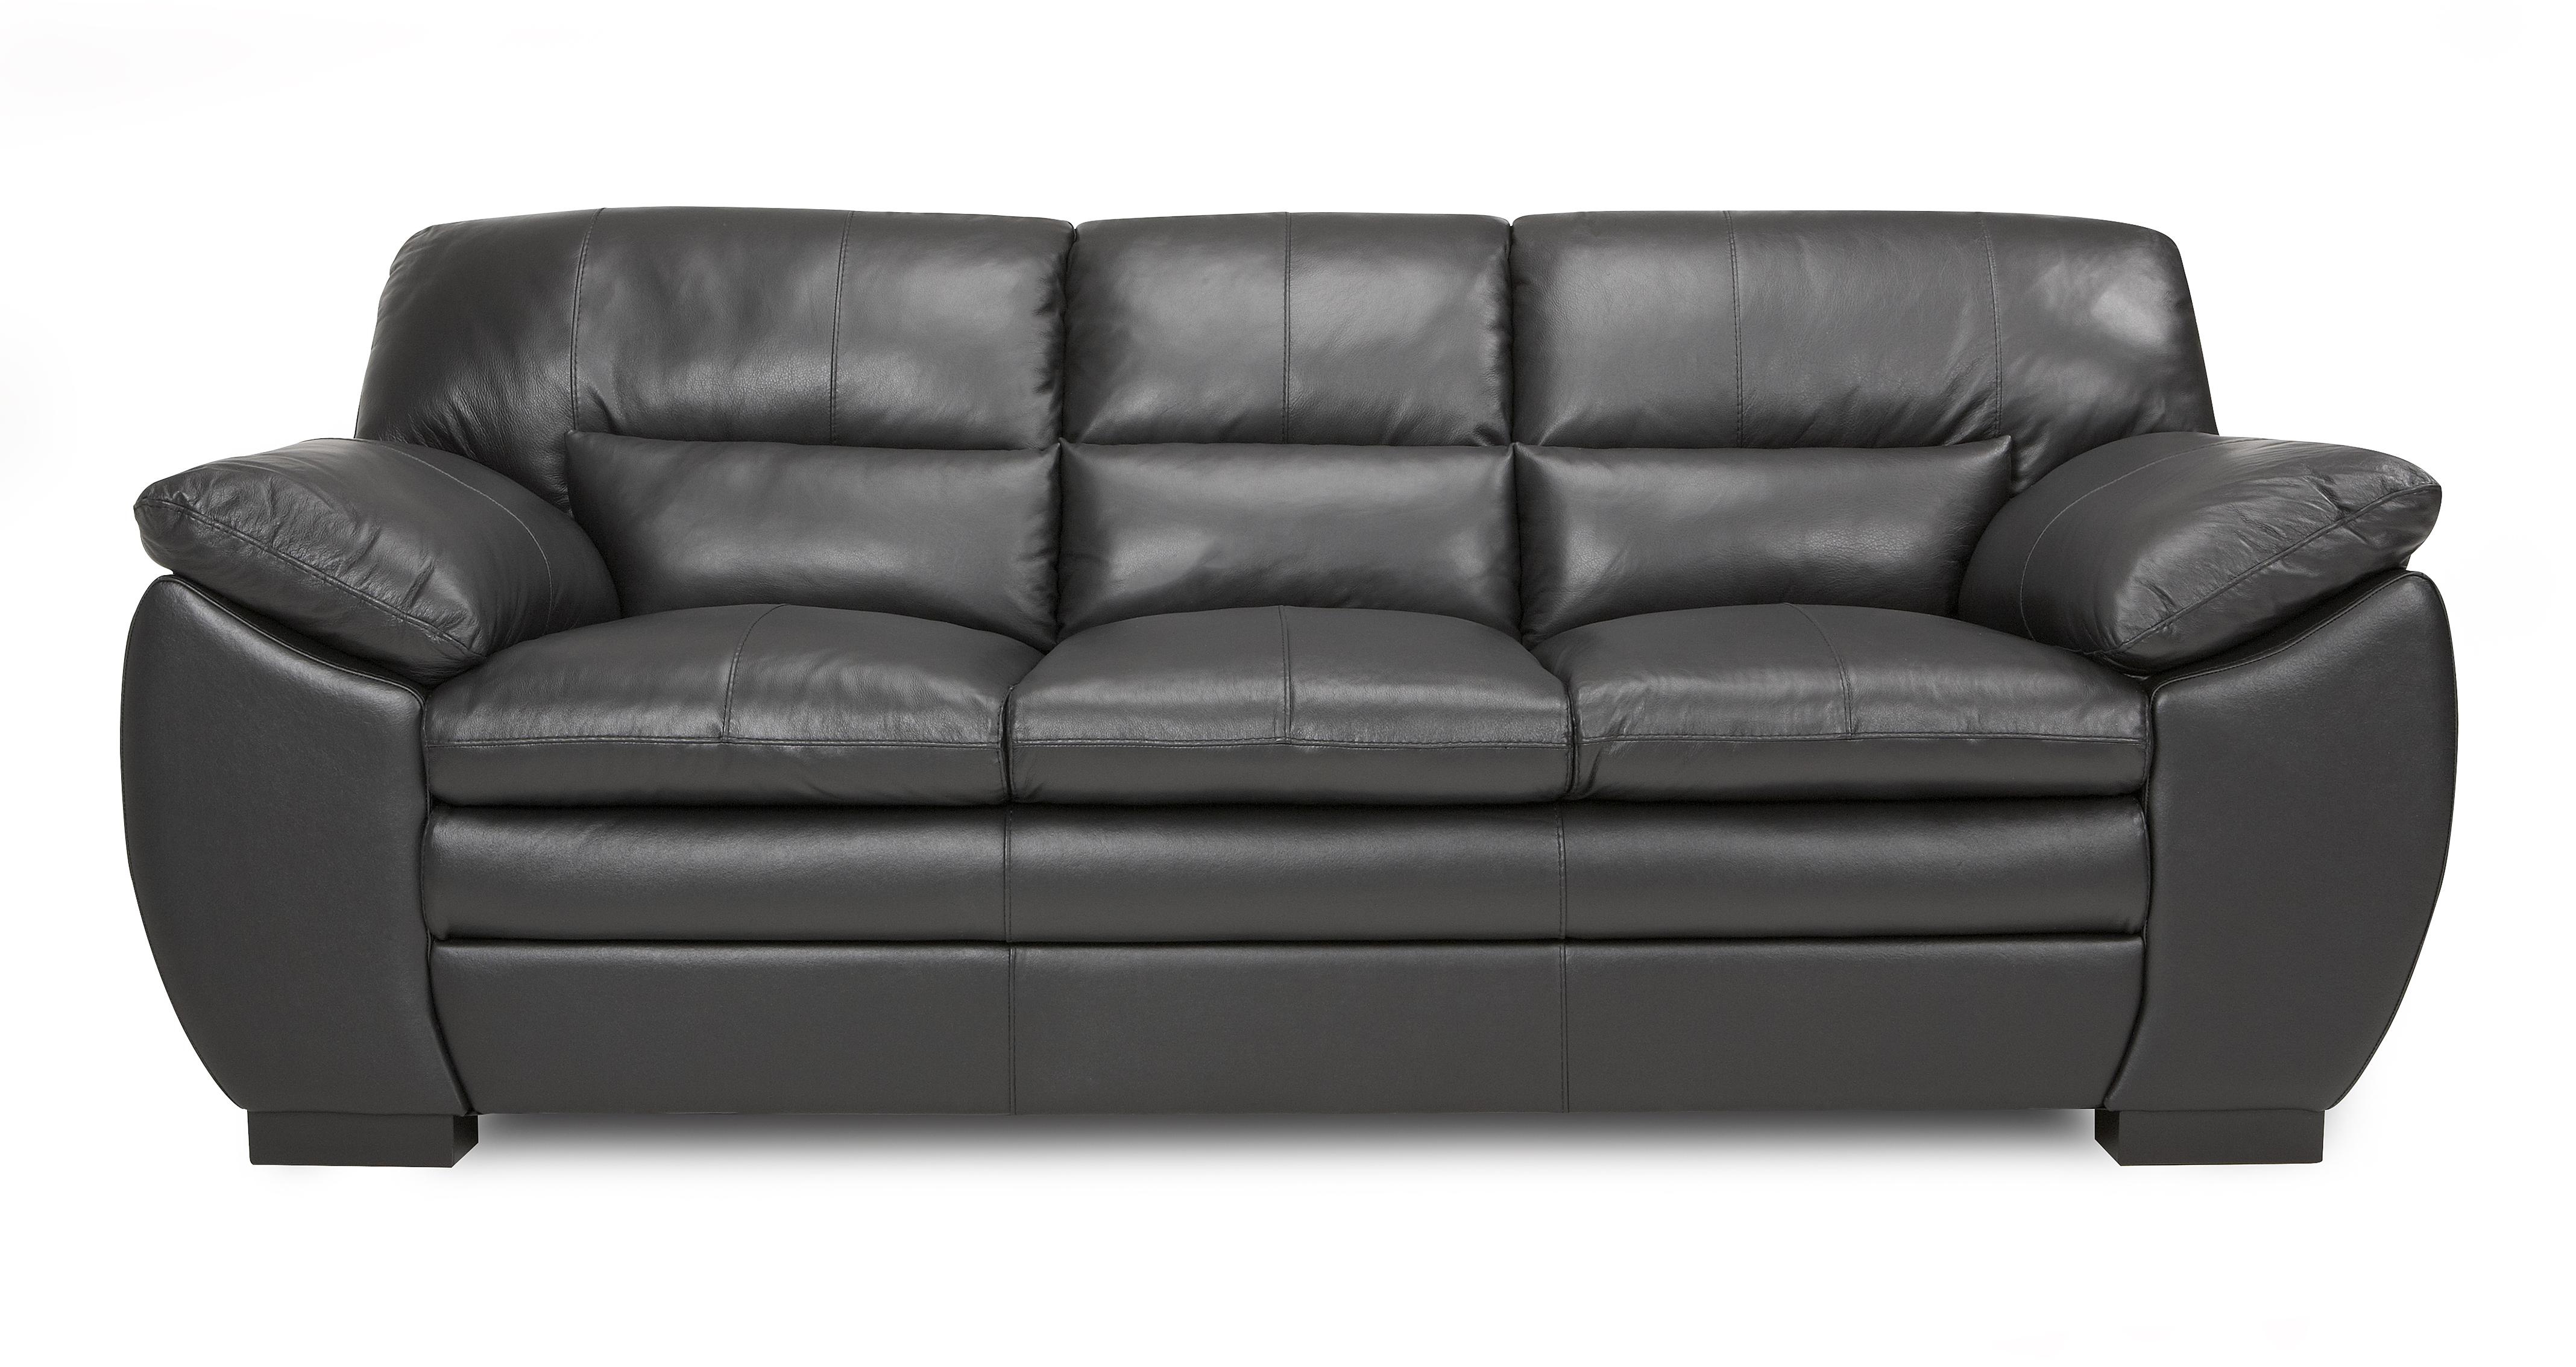 new sofas dfs sofa bed repairs london force black leather 3 seater